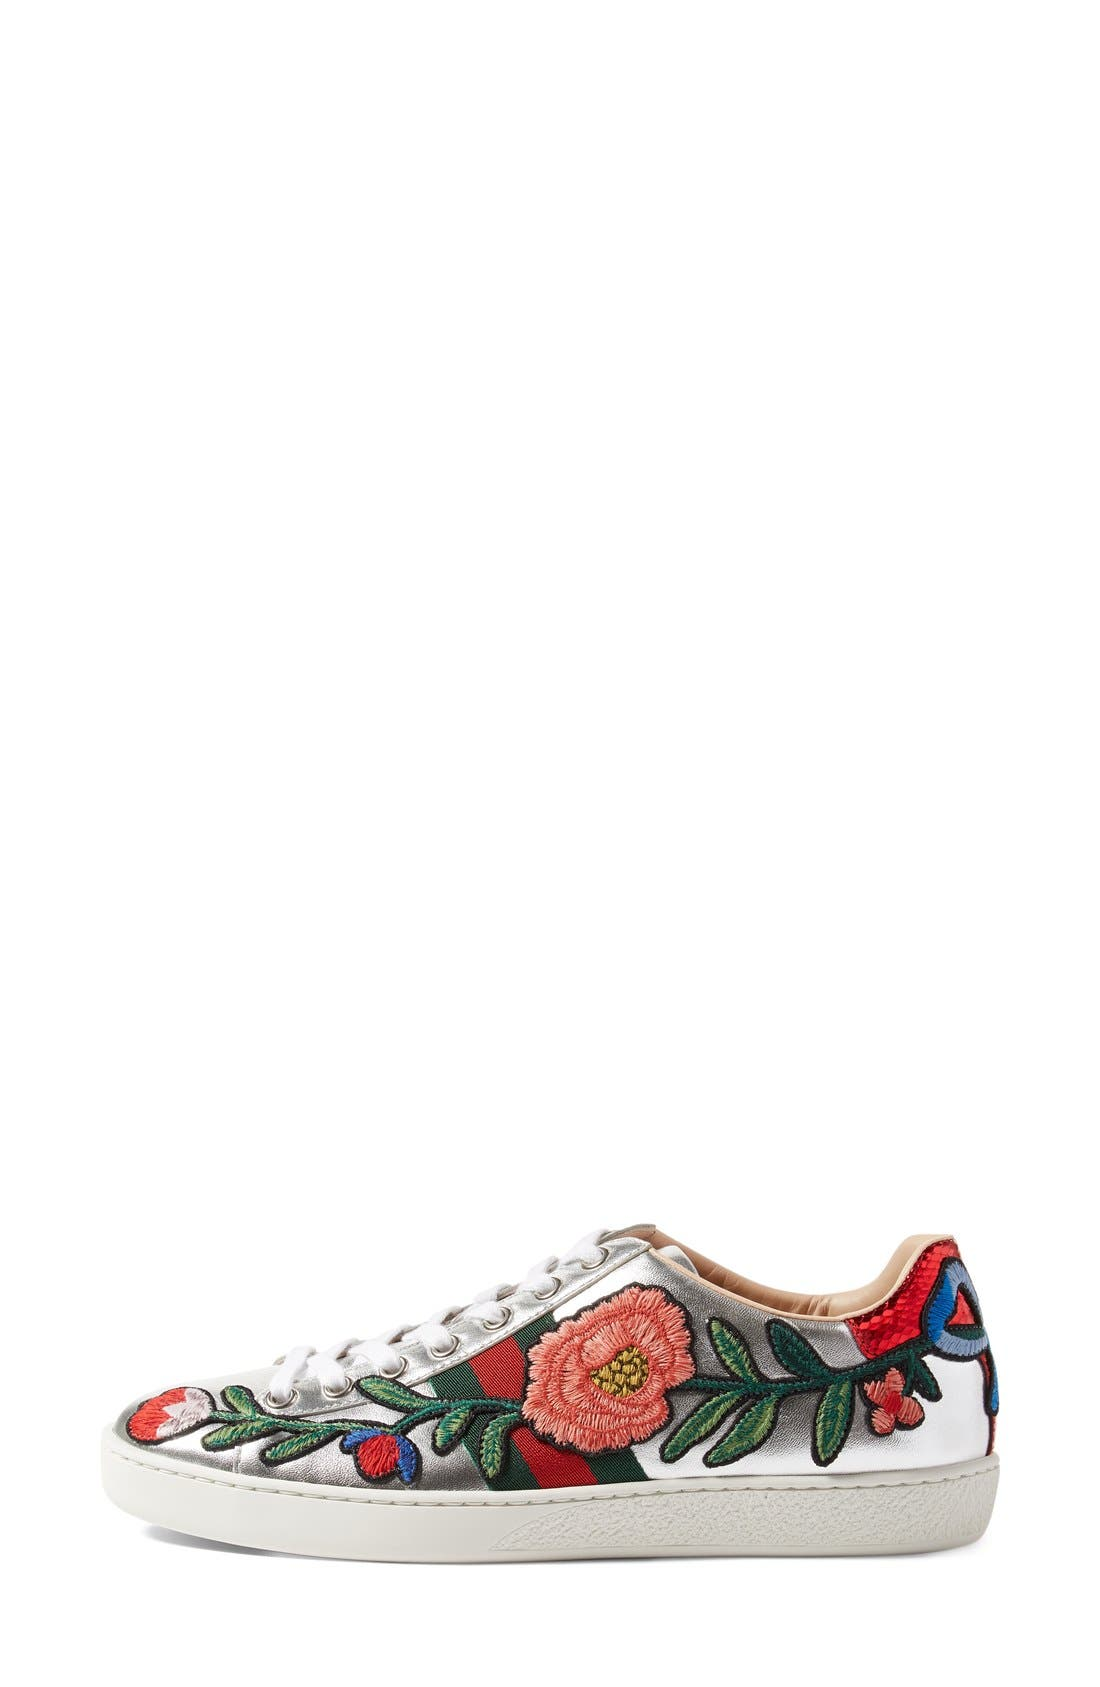 'New Ace' Low Top Sneaker,                             Alternate thumbnail 29, color,